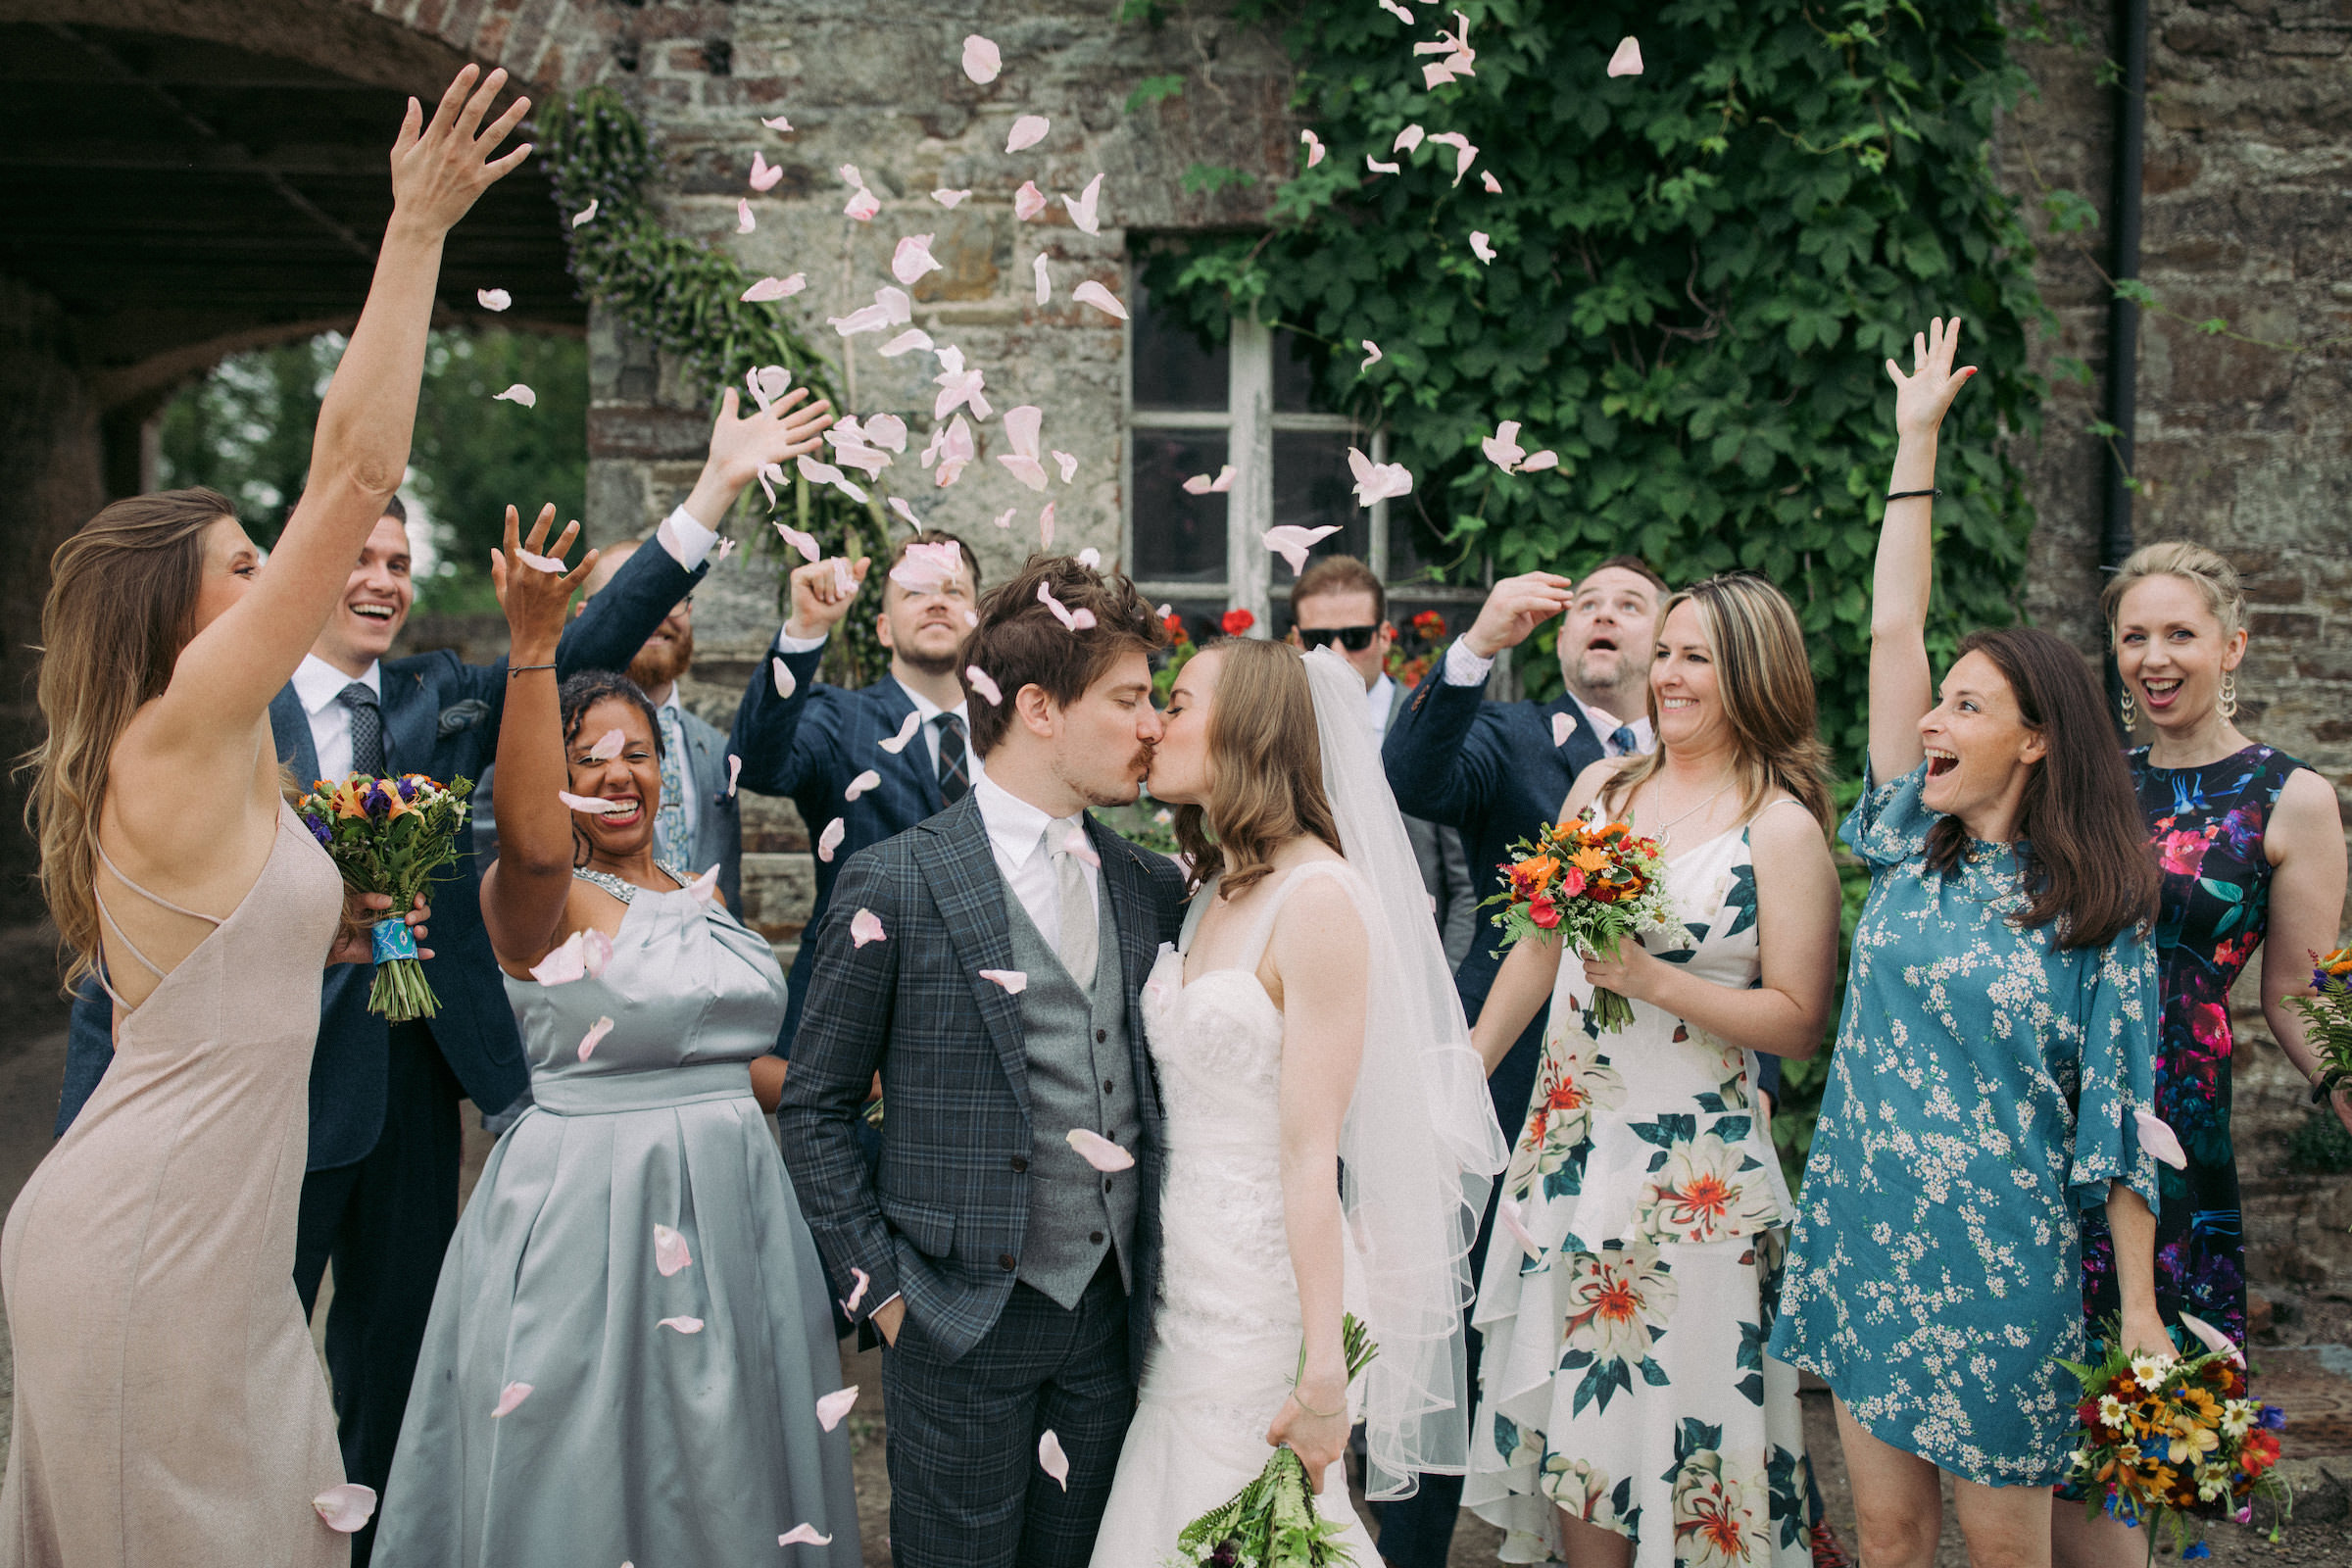 Friends throw rose petals on couple while they kiss - photo by White Cat Studio